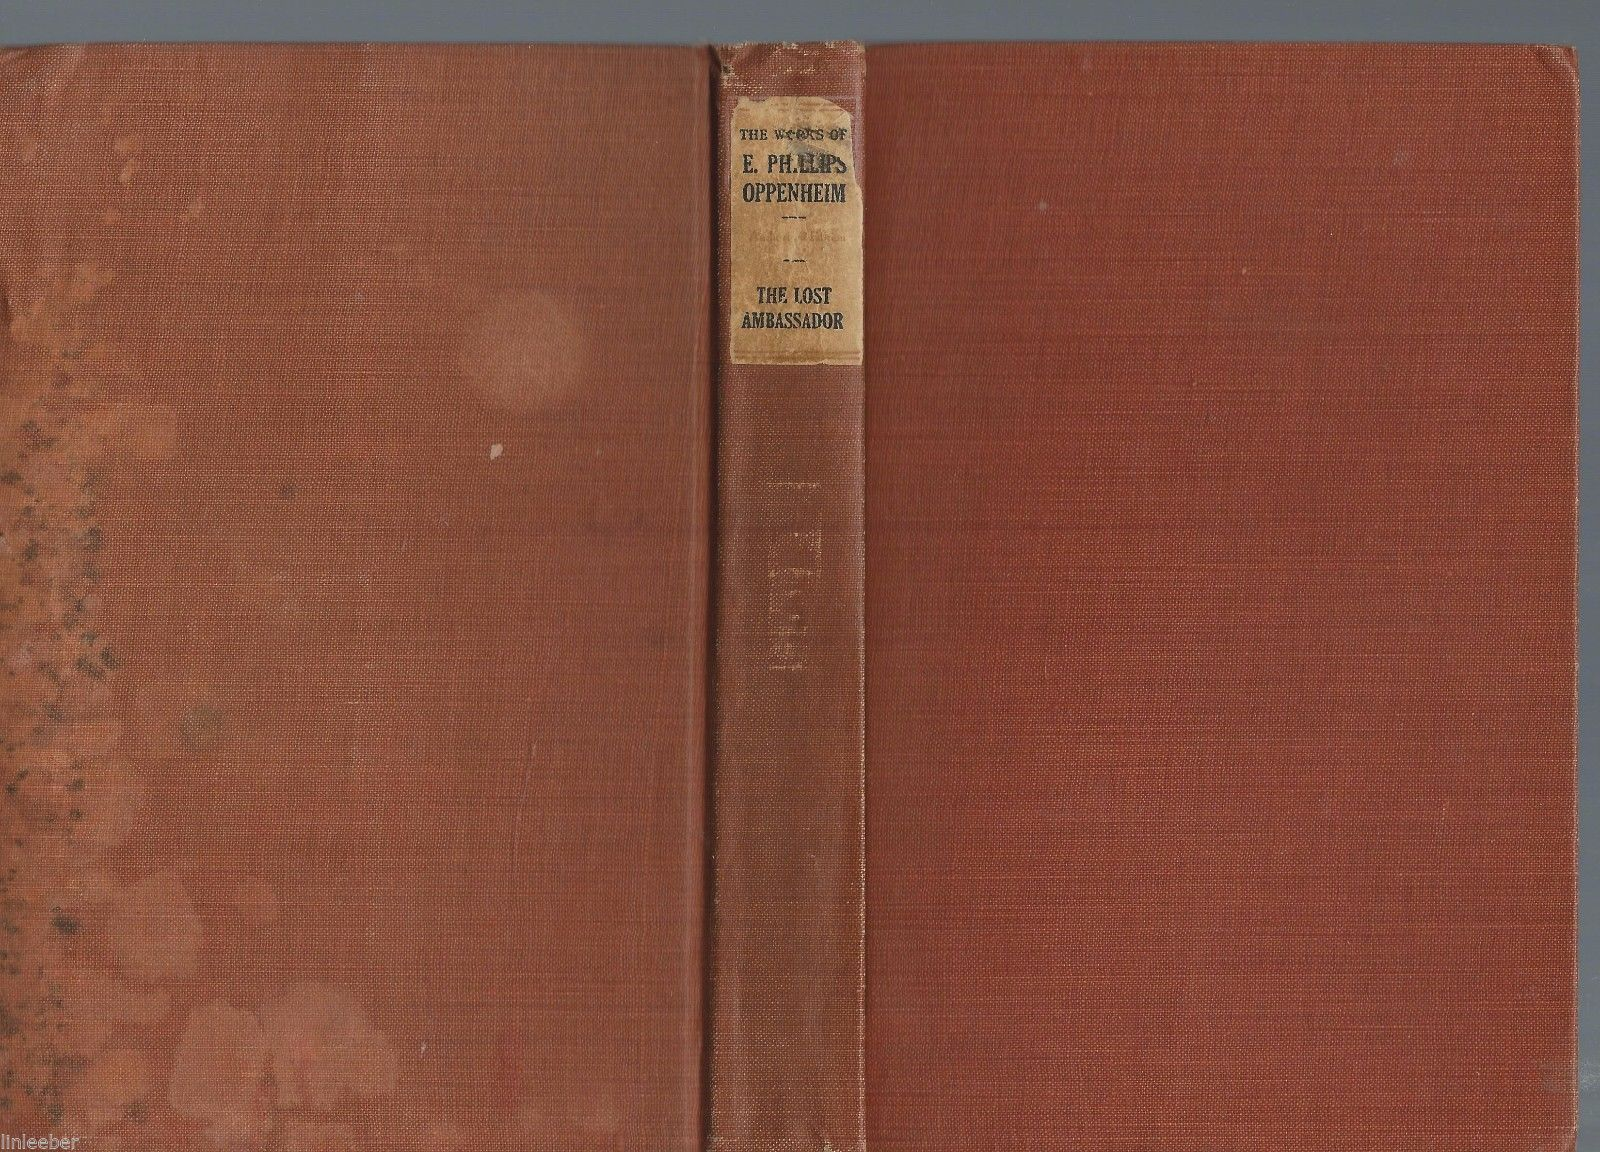 The Lost Ambassador-E.Phillips Oppenheim,1920 Review of Review Co.;©1910;Mystery